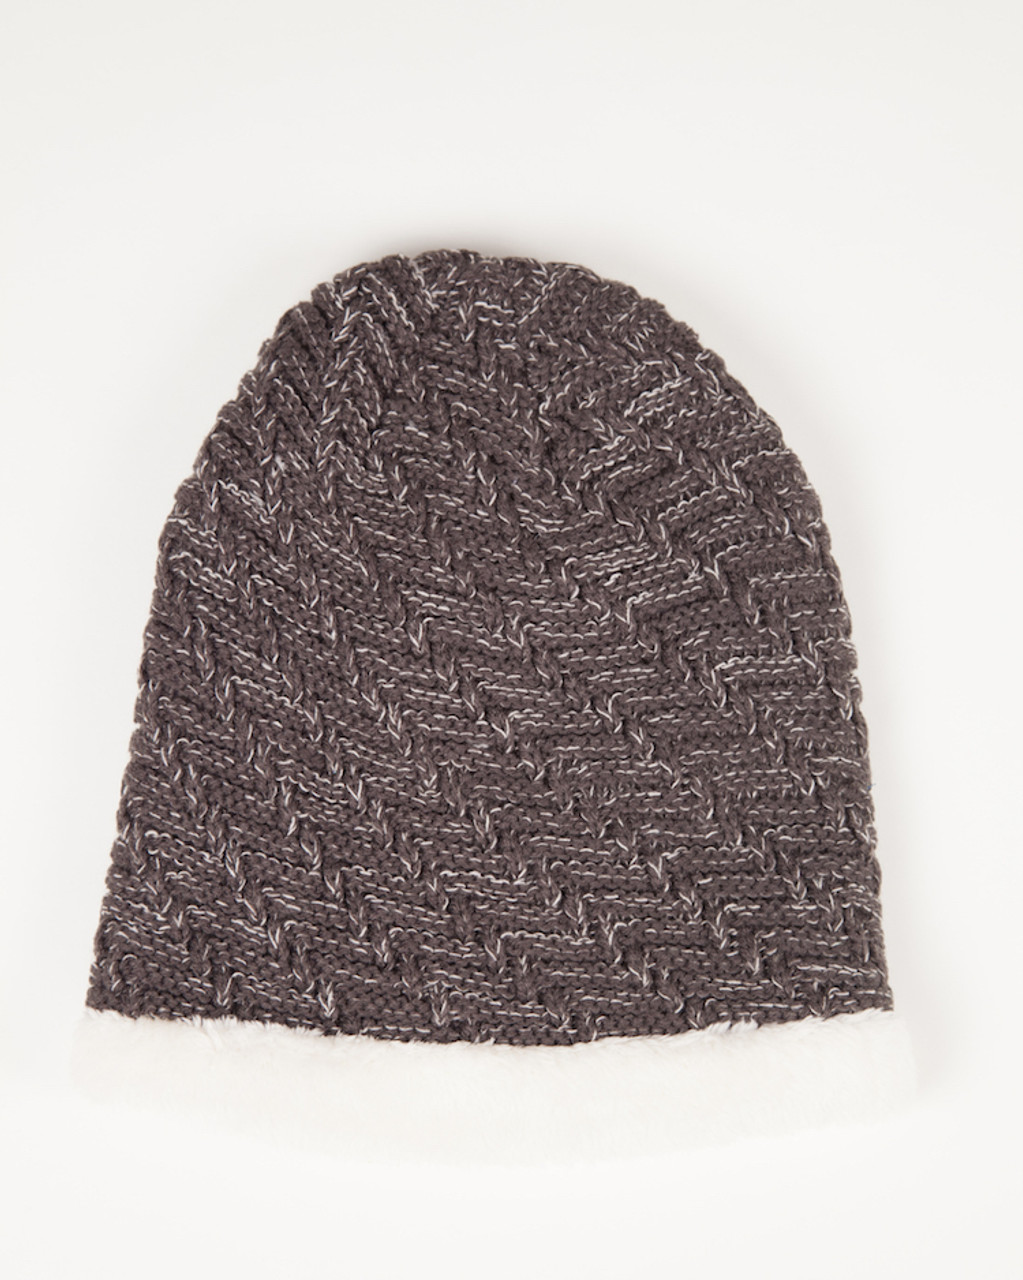 108b26ea10863 Faux Fur Lined Beanie Hat - Chocolate - Grace Oliver